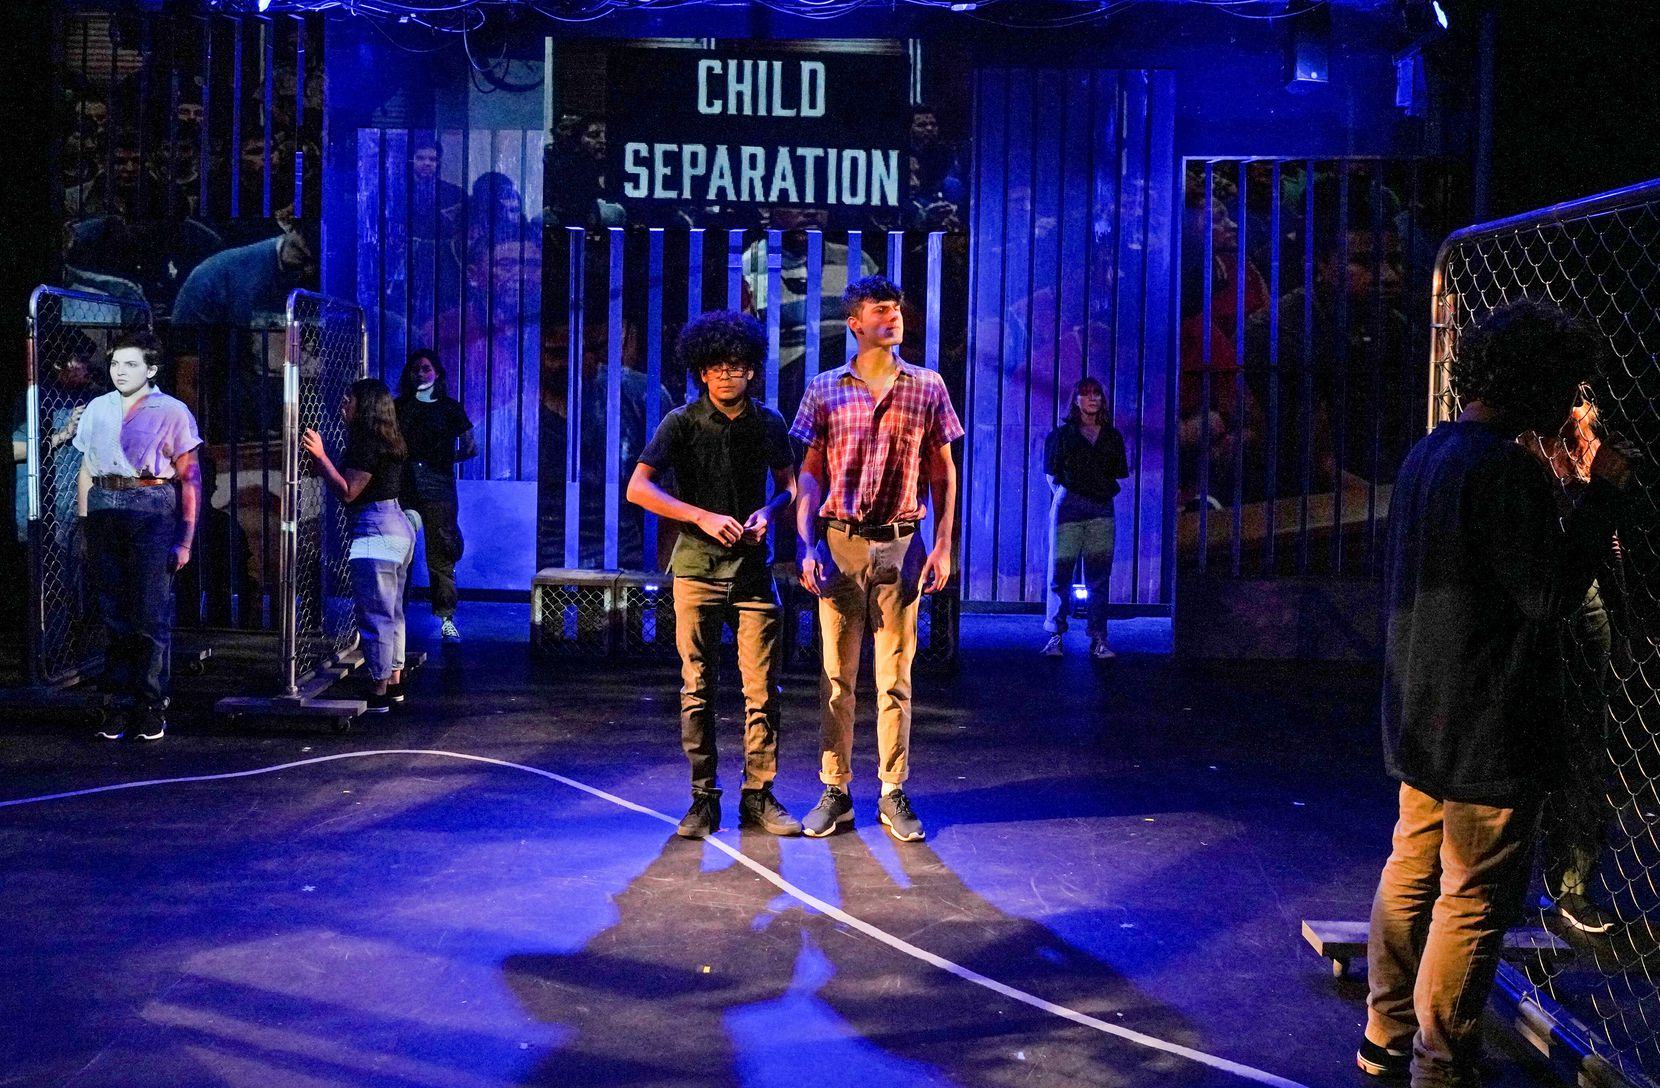 Child separation is one of the issues that the teen actors of Cry Havoc Theater Company explore in Crossing the Line, which runs through Aug. 4 at the Trinity River Arts Center in a co-production with Kitchen Dog Theater.